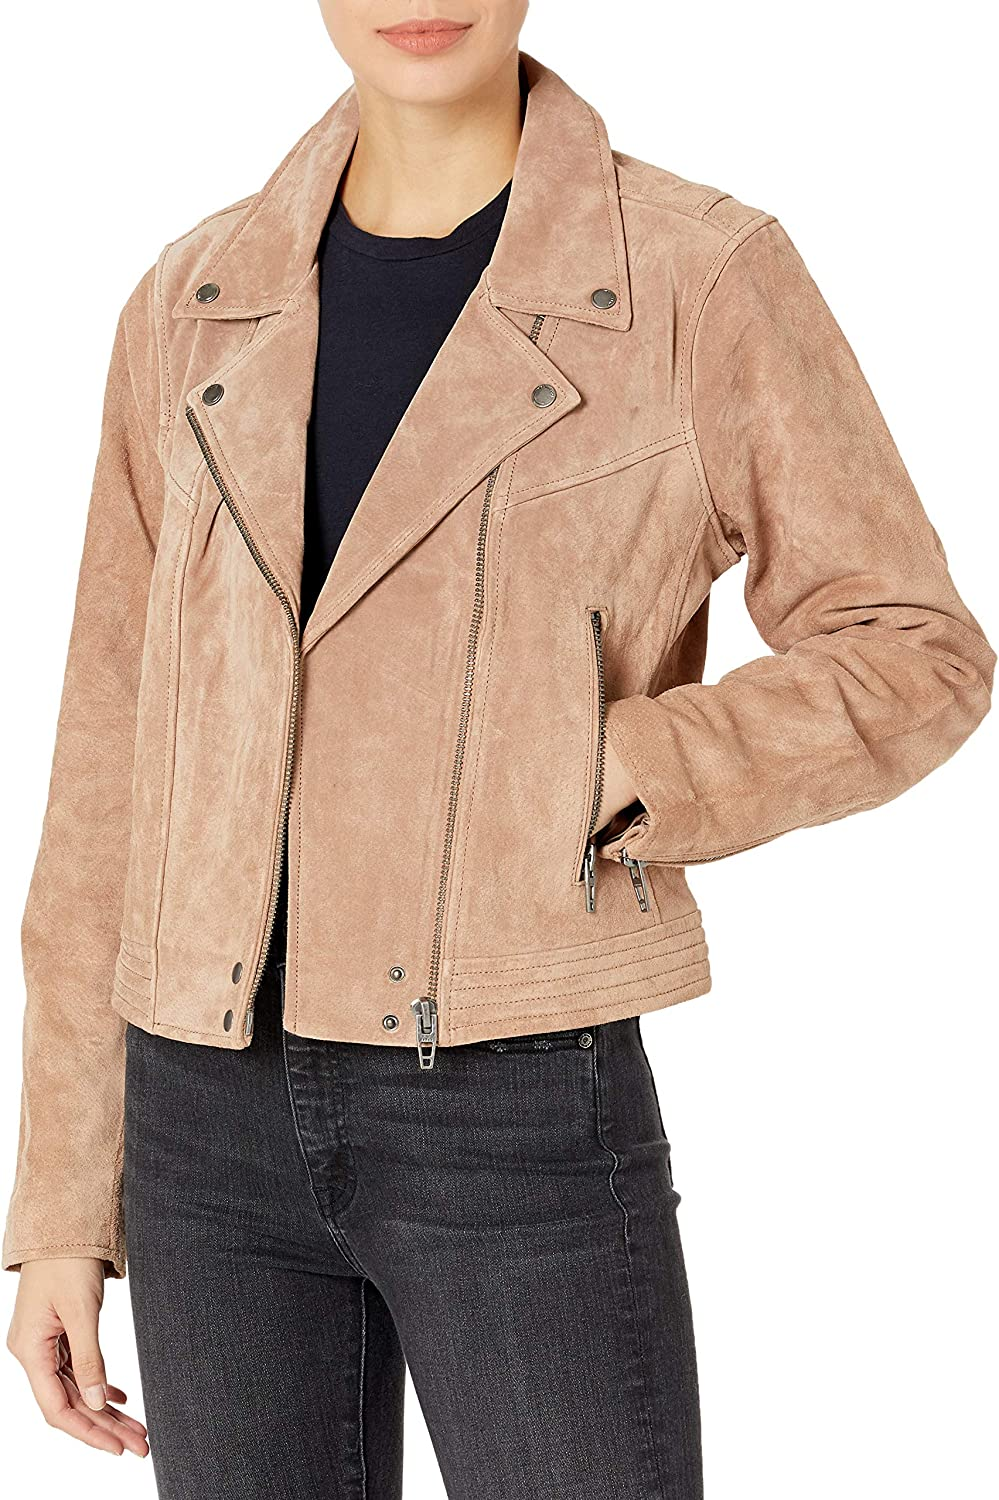 [BLANKNYC] womens Luxury Clothing Suede Motorcycle Jacket With Zipper Pocket Detail